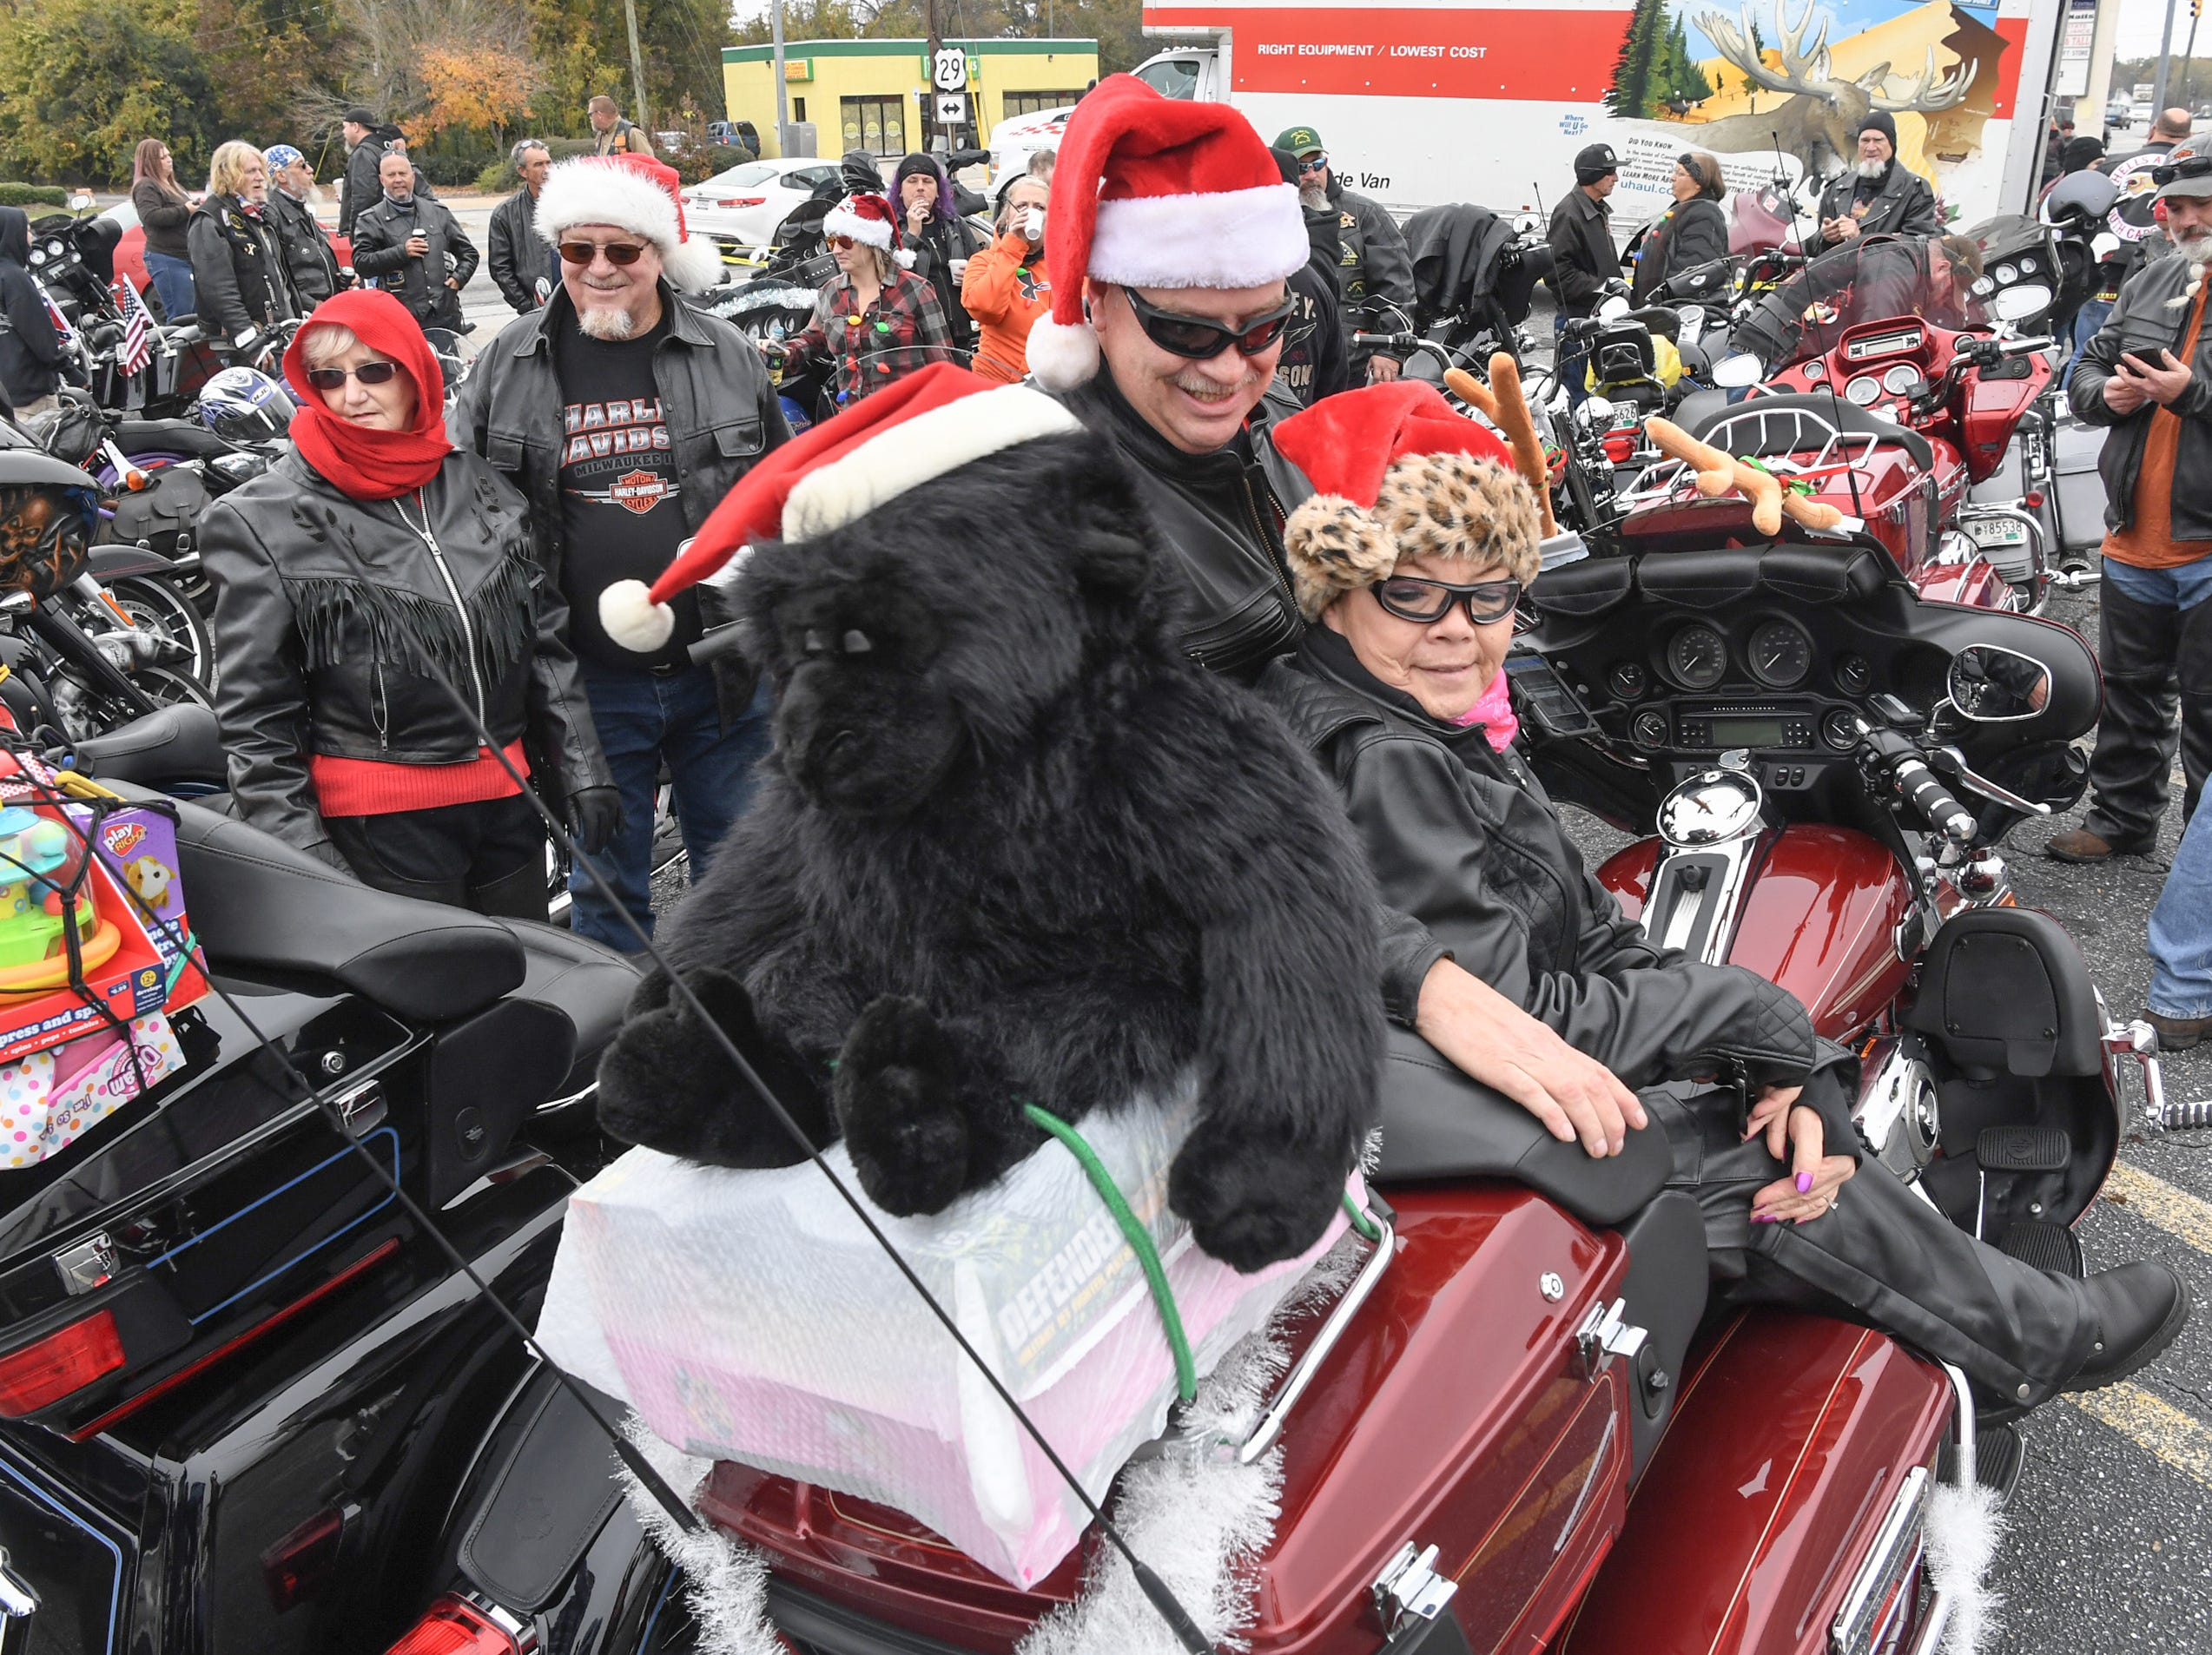 """Martin Nash of Anderson places a red bow on his motorcycle near Sheri Nash, left, near Milton and Rachael Nash, right, before the 38th Jack Hurley Toy Parade in Anderson on Sunday, November 25, 2018. The parade started at White Jones Hardware parking lot in the Watson Village, followed along Main Street to the Civic Center of Anderson where toys were donated to Anderson Cares and Shares. Organizer Robert """"Little Man"""" Fagg said about 350 families are helped out with toys for Christmas."""